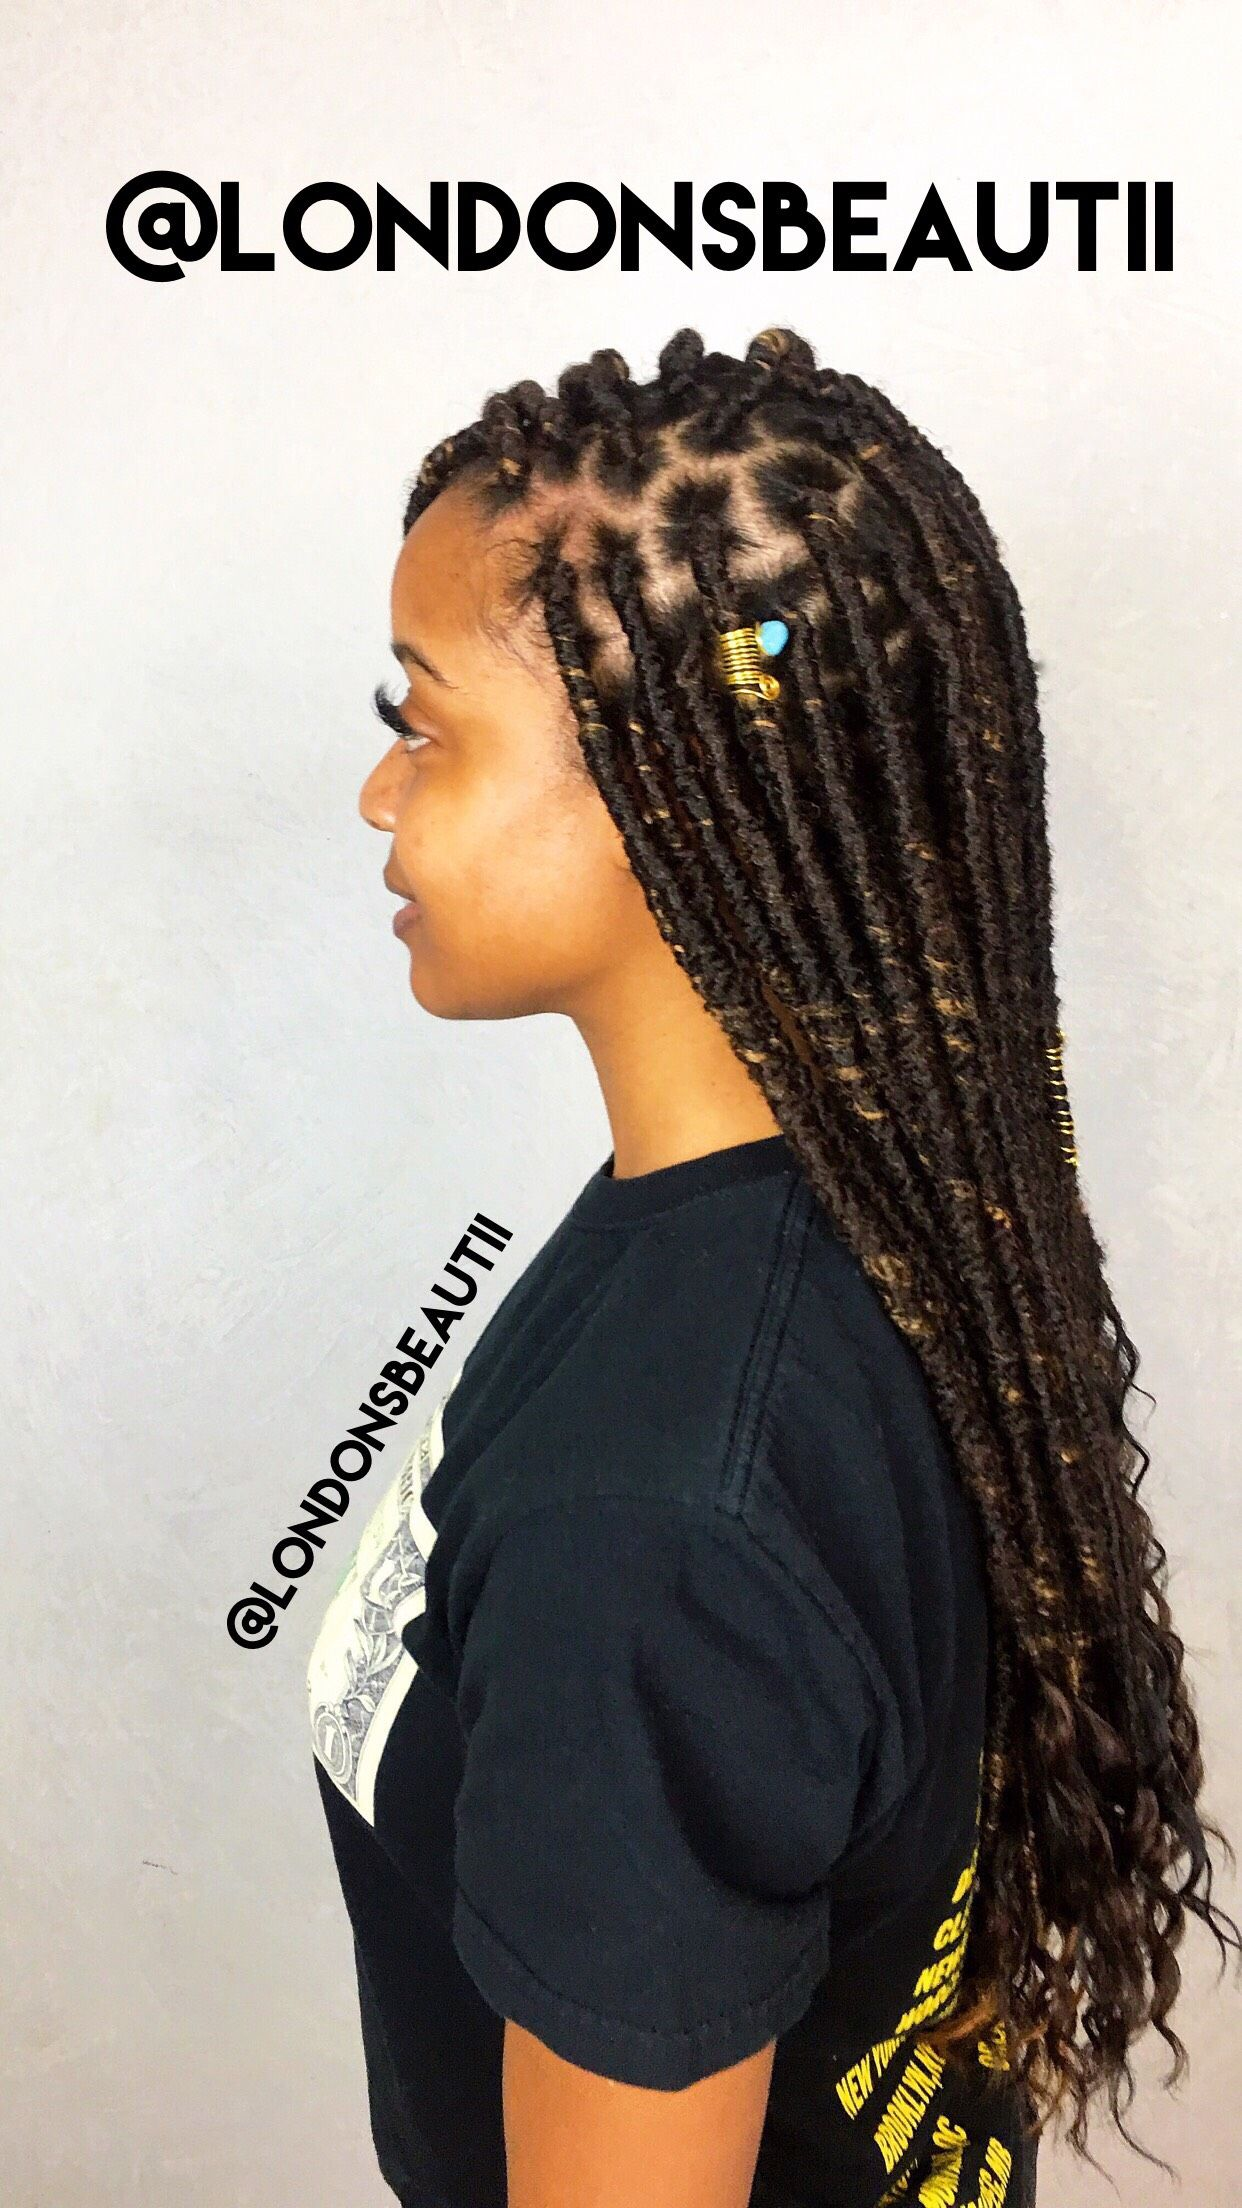 Goddess Faux Locs Done By London S Beautii In Bowie